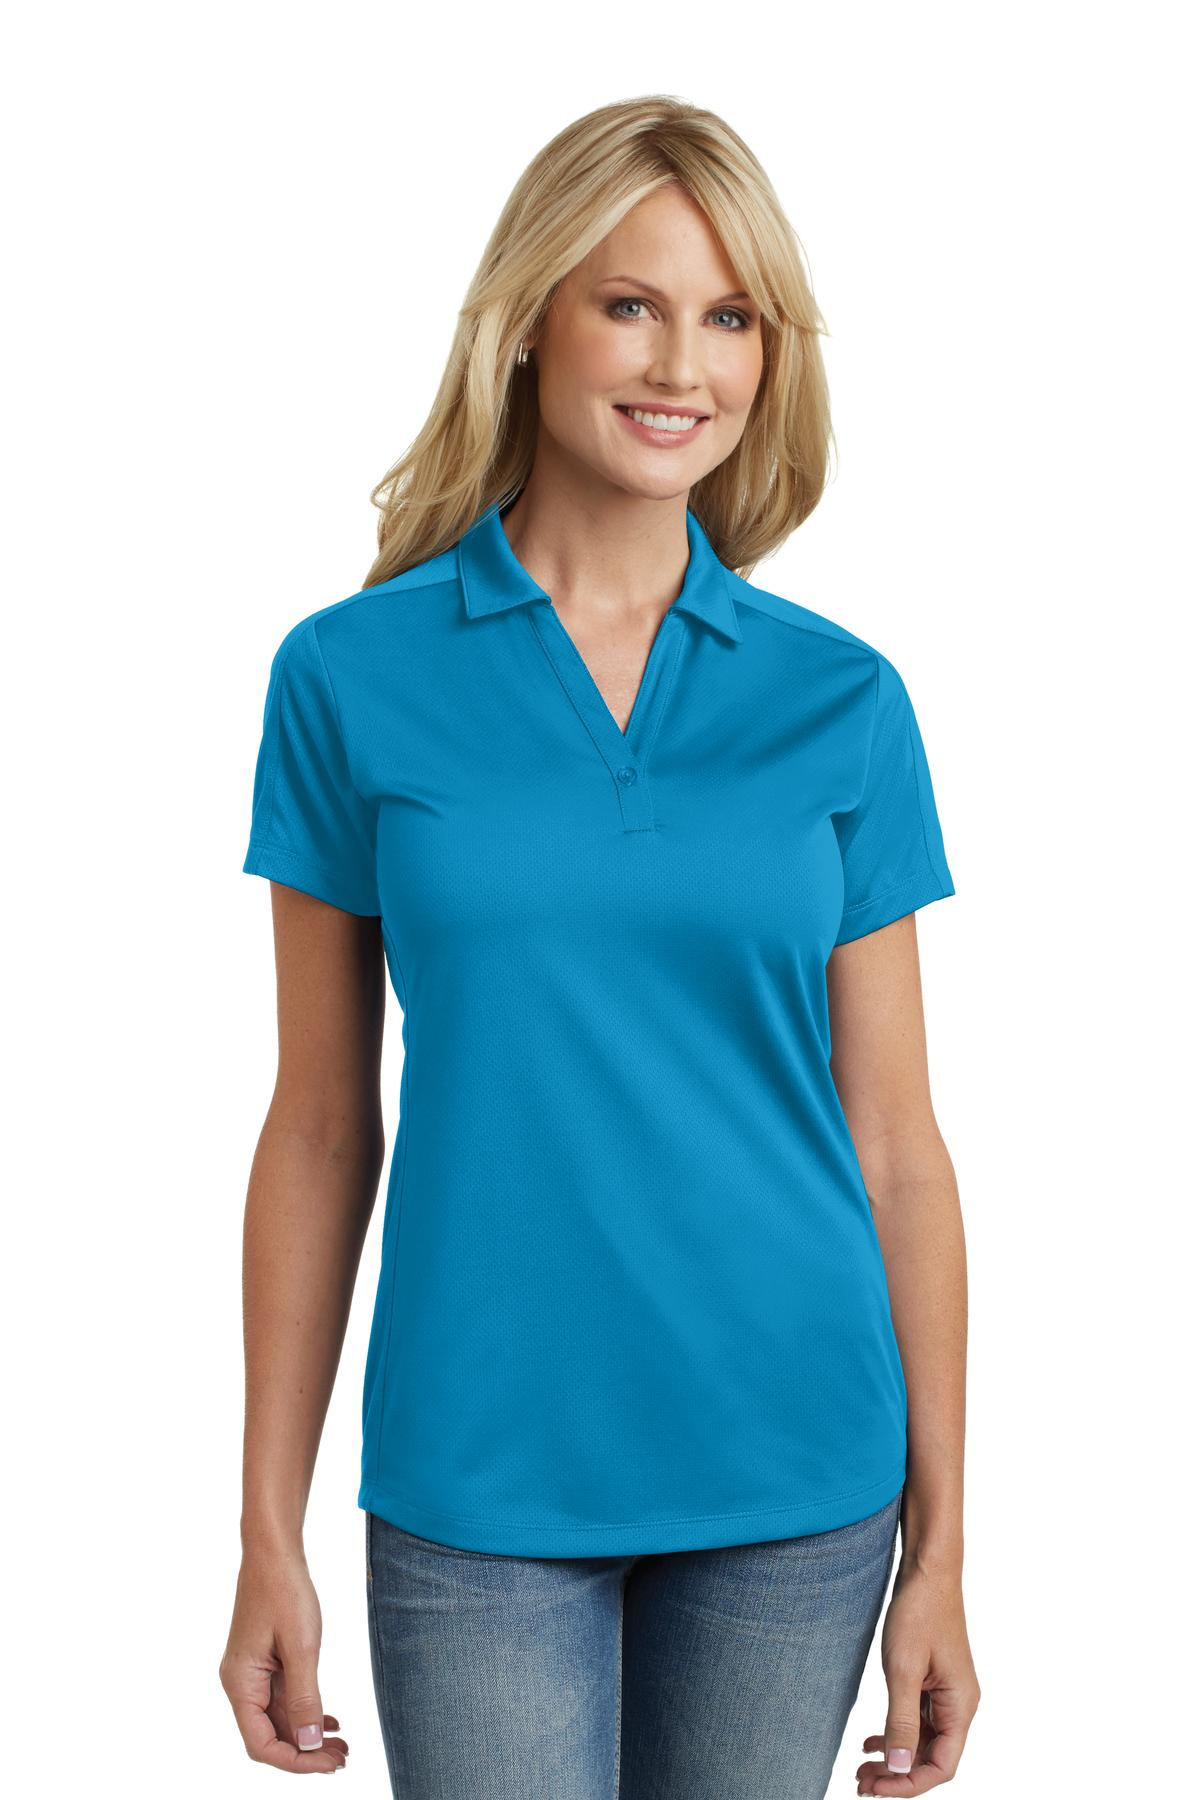 Custom Embroidered Womens Polo Shirts Logo Shirts Direct